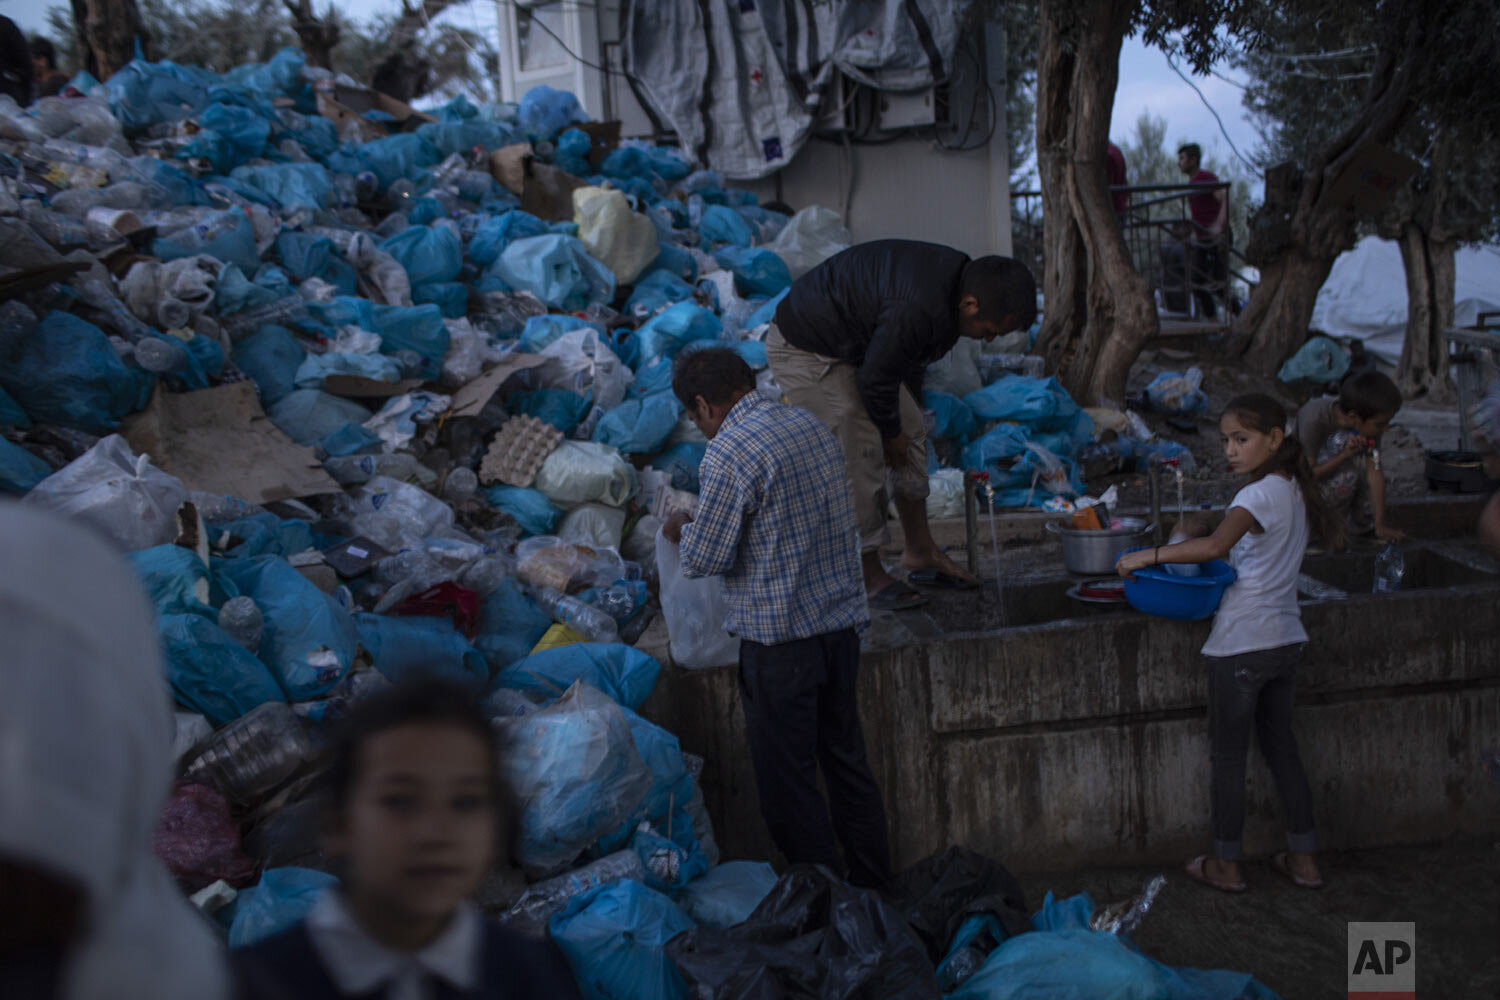 People use the public wash area, in front of a pile of garbage bags at a makeshift refugee and migrant camp next to the overcrowded Moria camp on the Greek island of Lesbos, Thursday, Oct. 3, 2019.. (AP Photo/Petros Giannakouris)